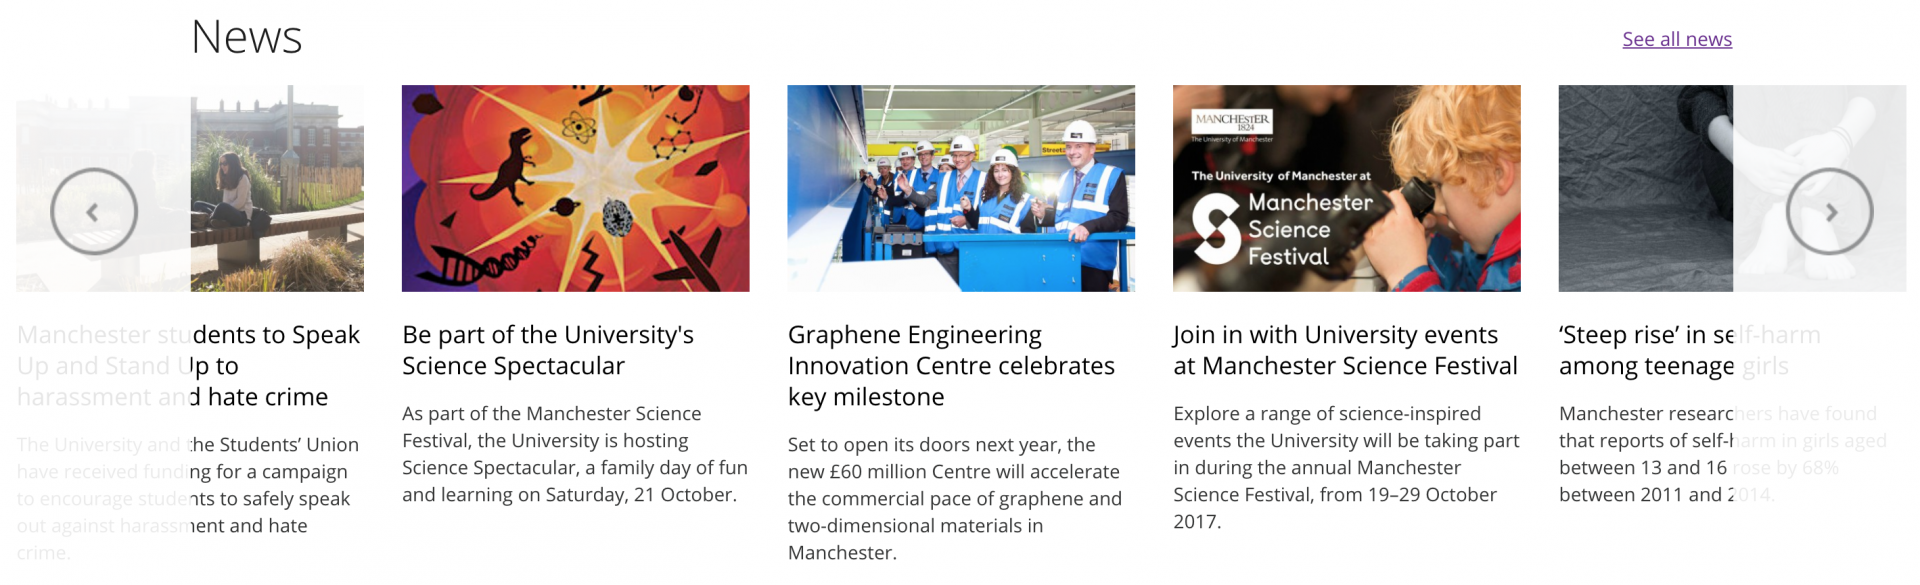 Homepage news feed University of Manchester